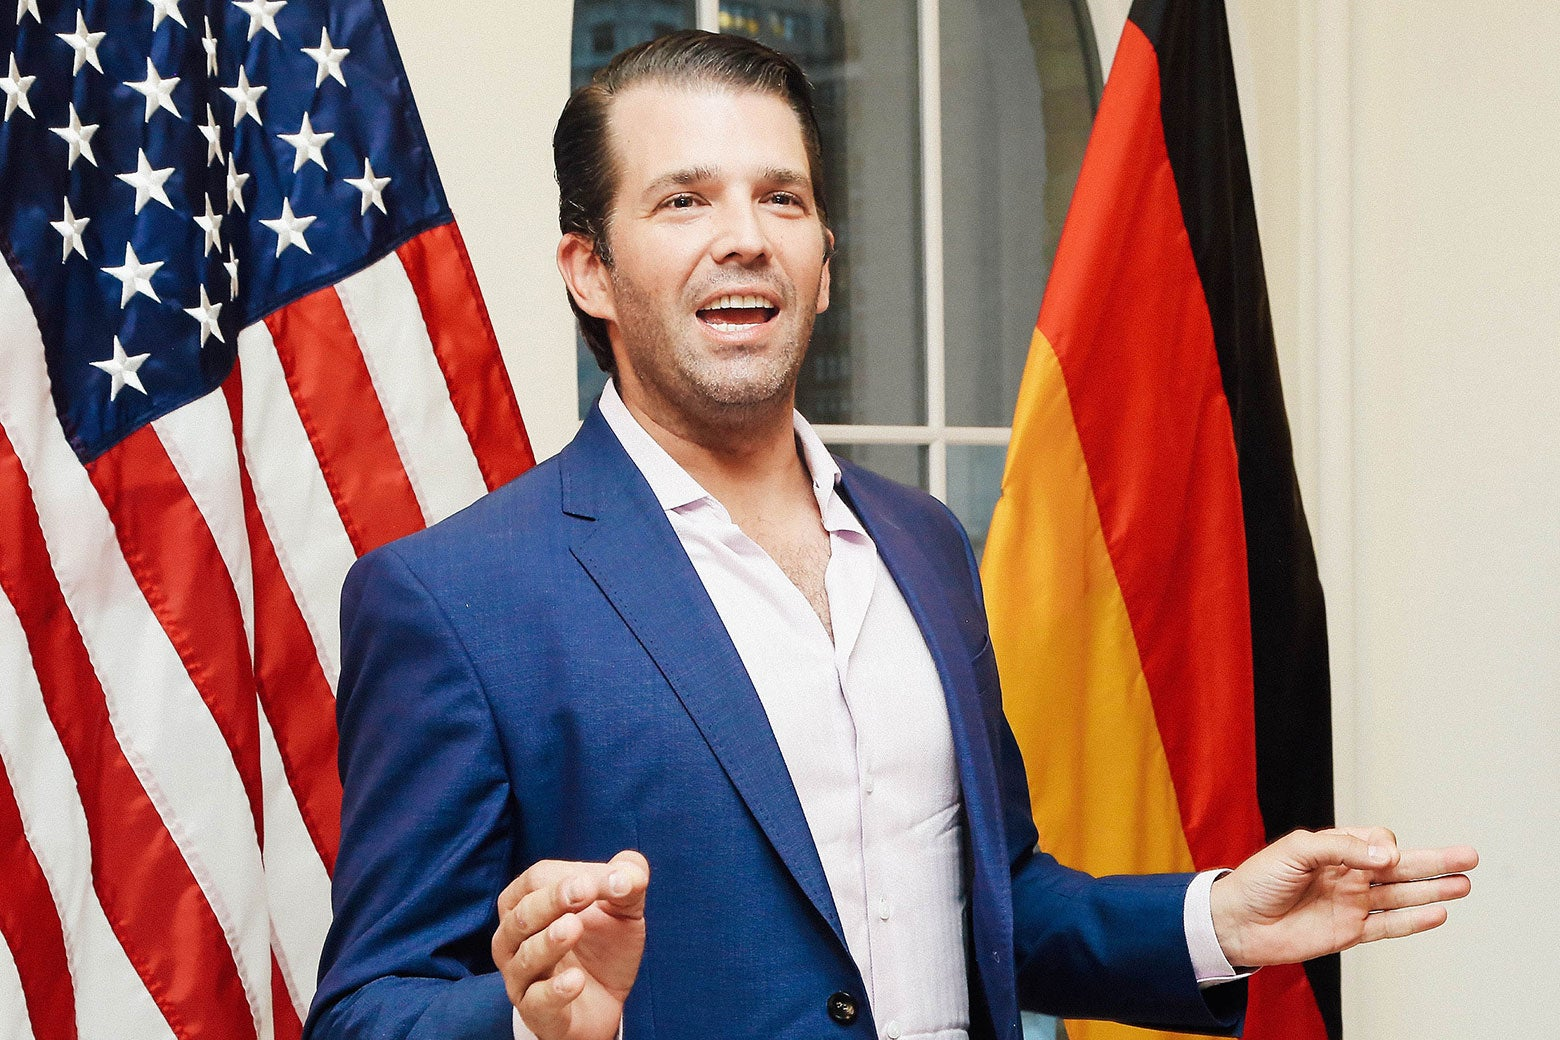 Donald Trump Jr. in front of American and German flags.